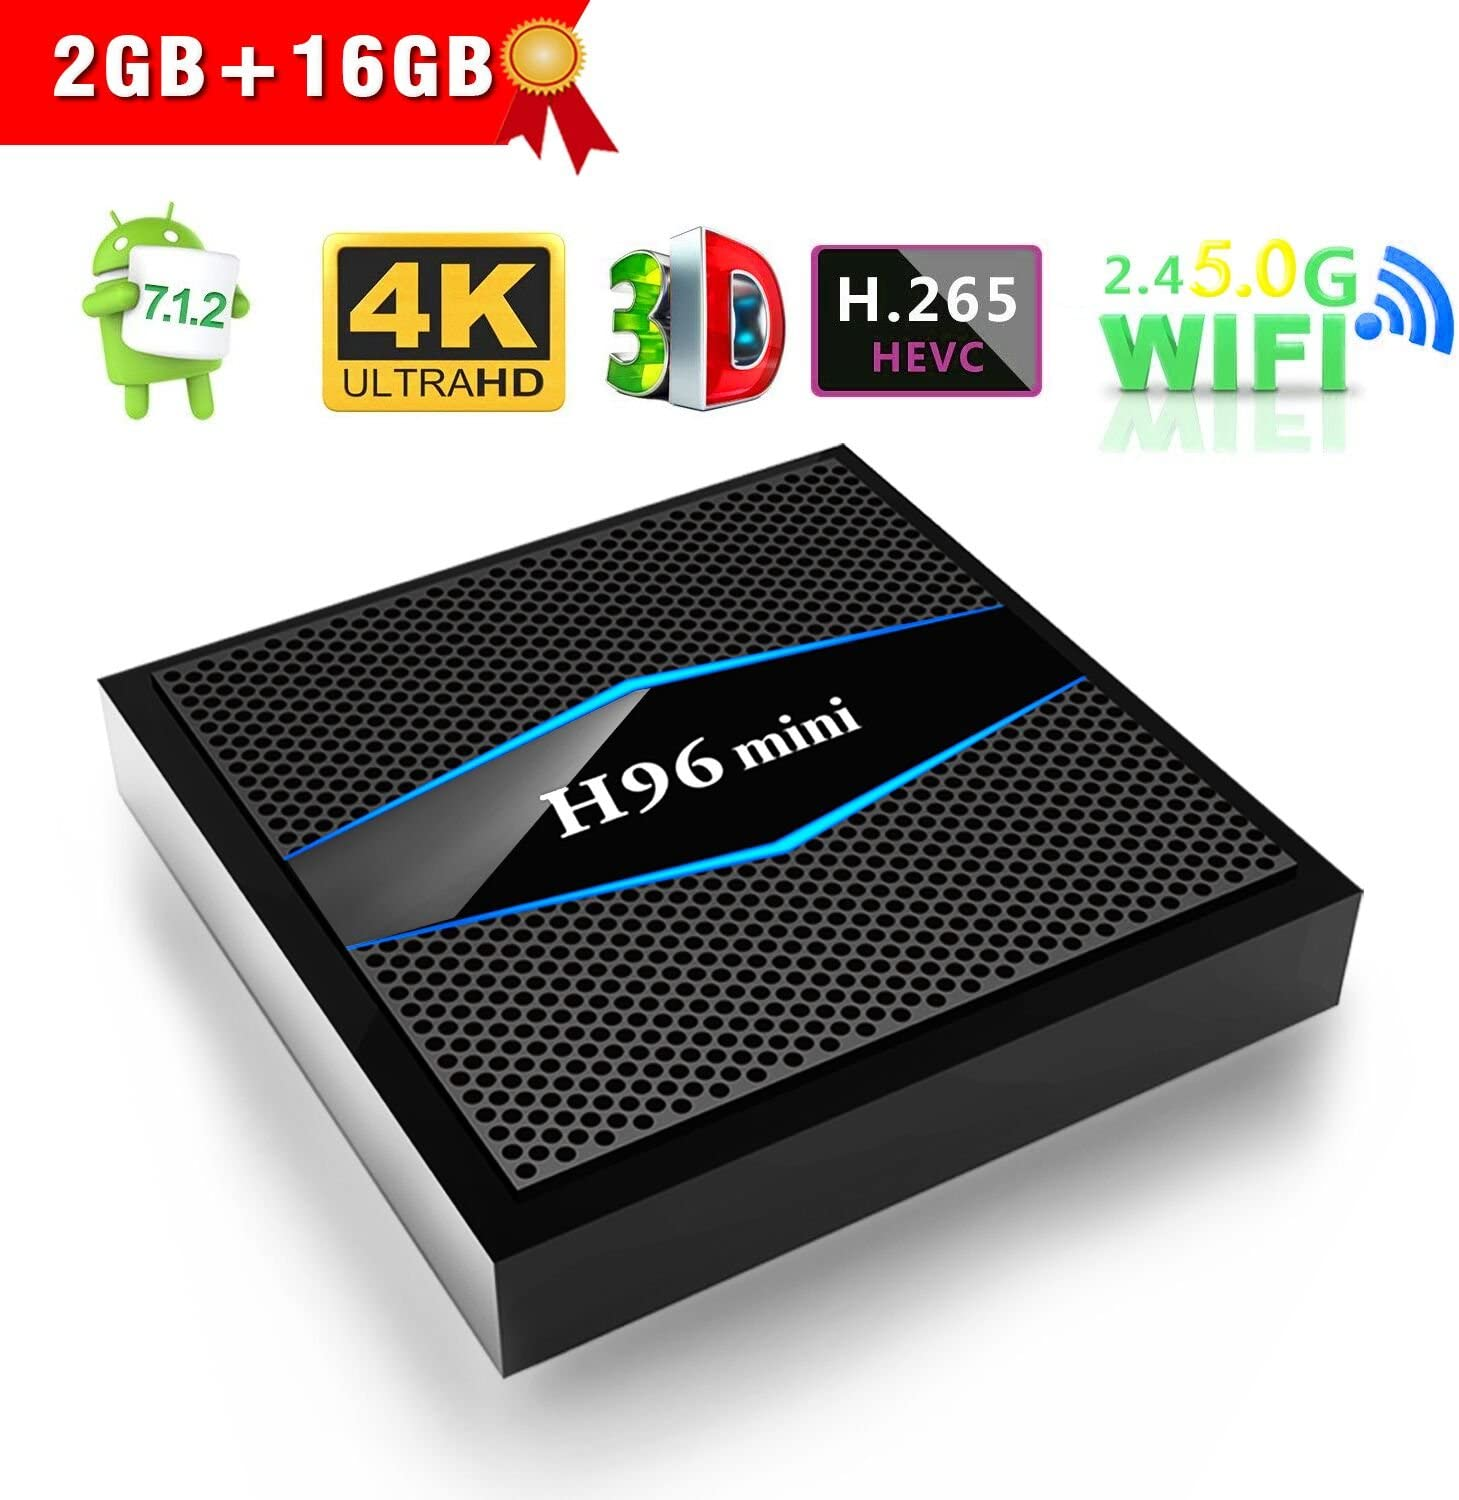 Shipping from Spain】TV Box Android 7.1: Amazon.es: Electrónica